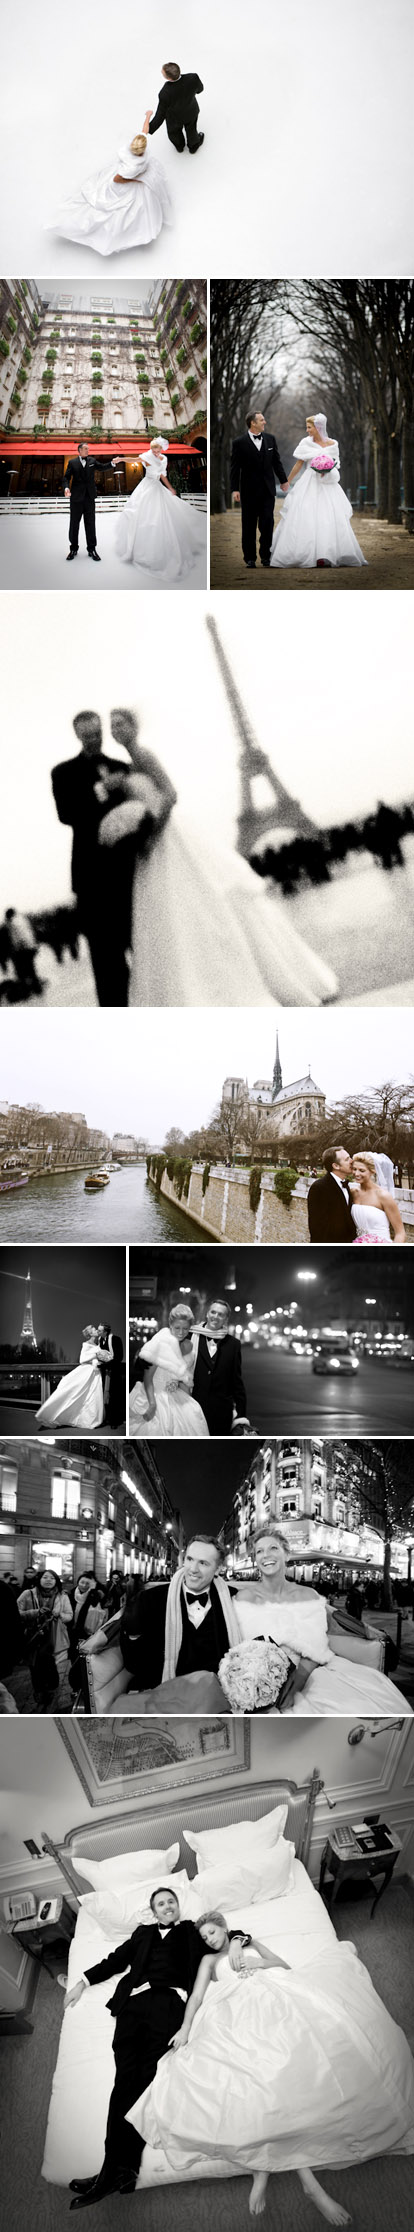 New Year's Eve elopement wedding photos in Paris, France, The Eiffel Tower, Notre Dame, the Champs-Elysees, Amy and Stuart Photography